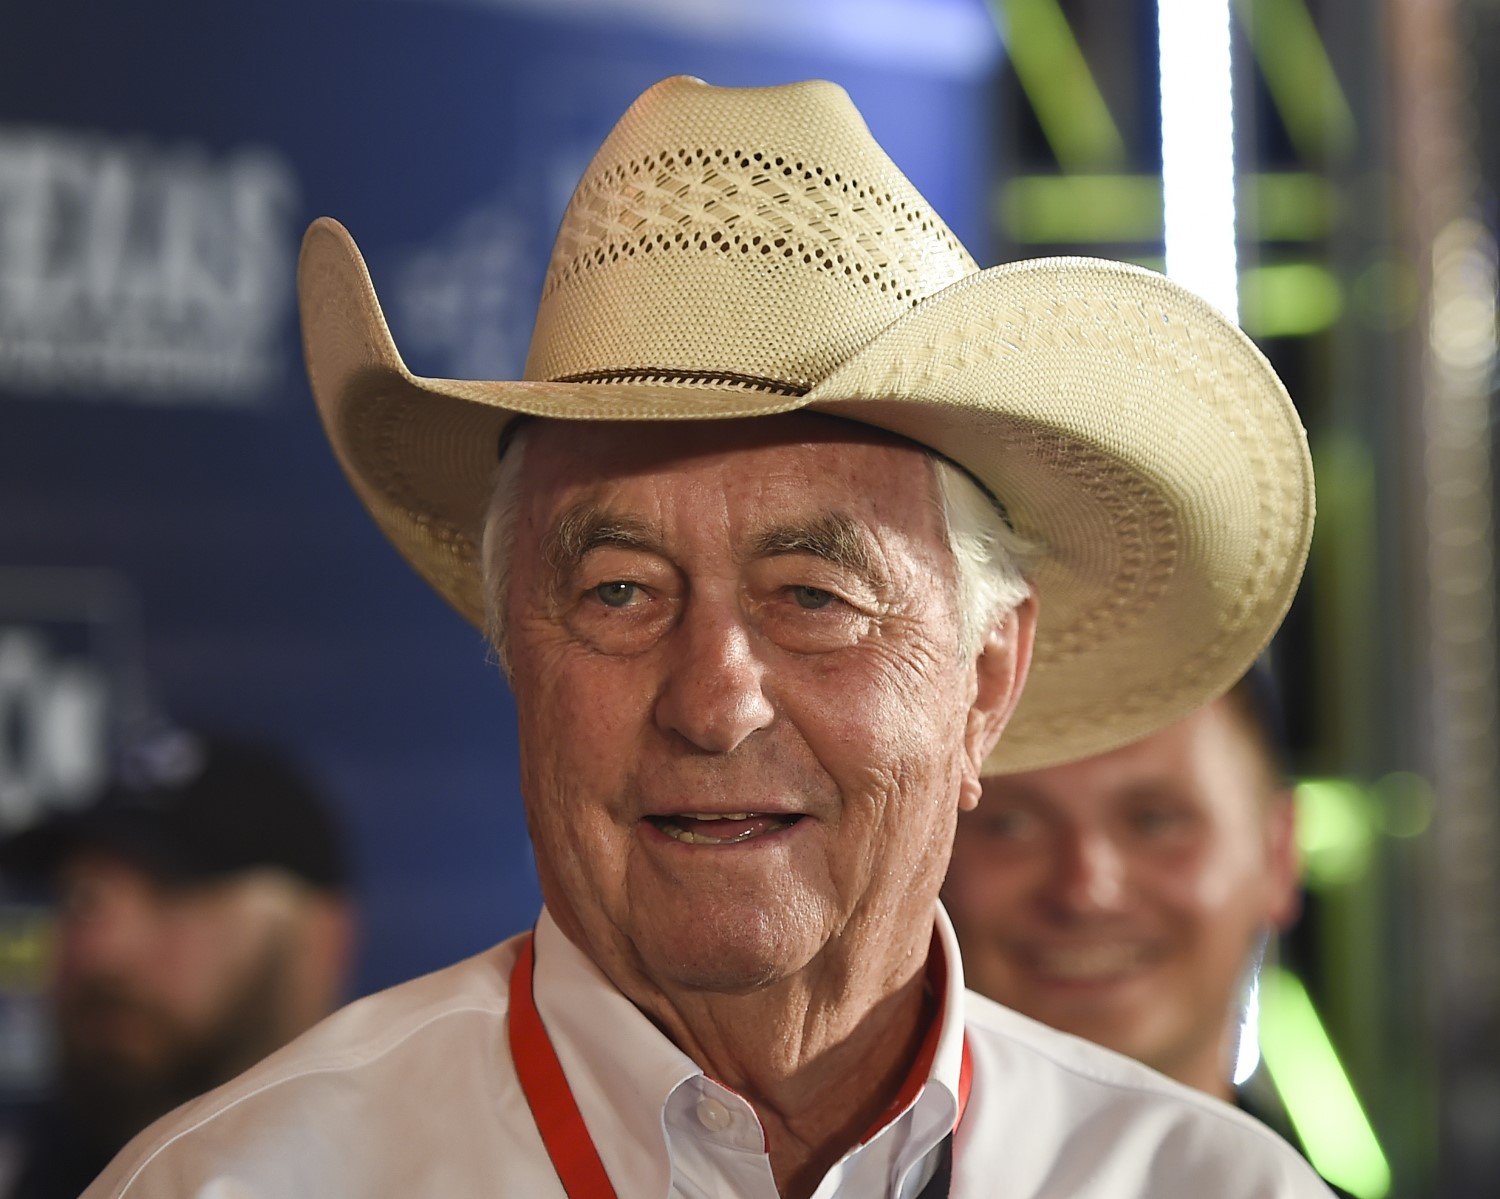 Roger Penske winning everything in 2019